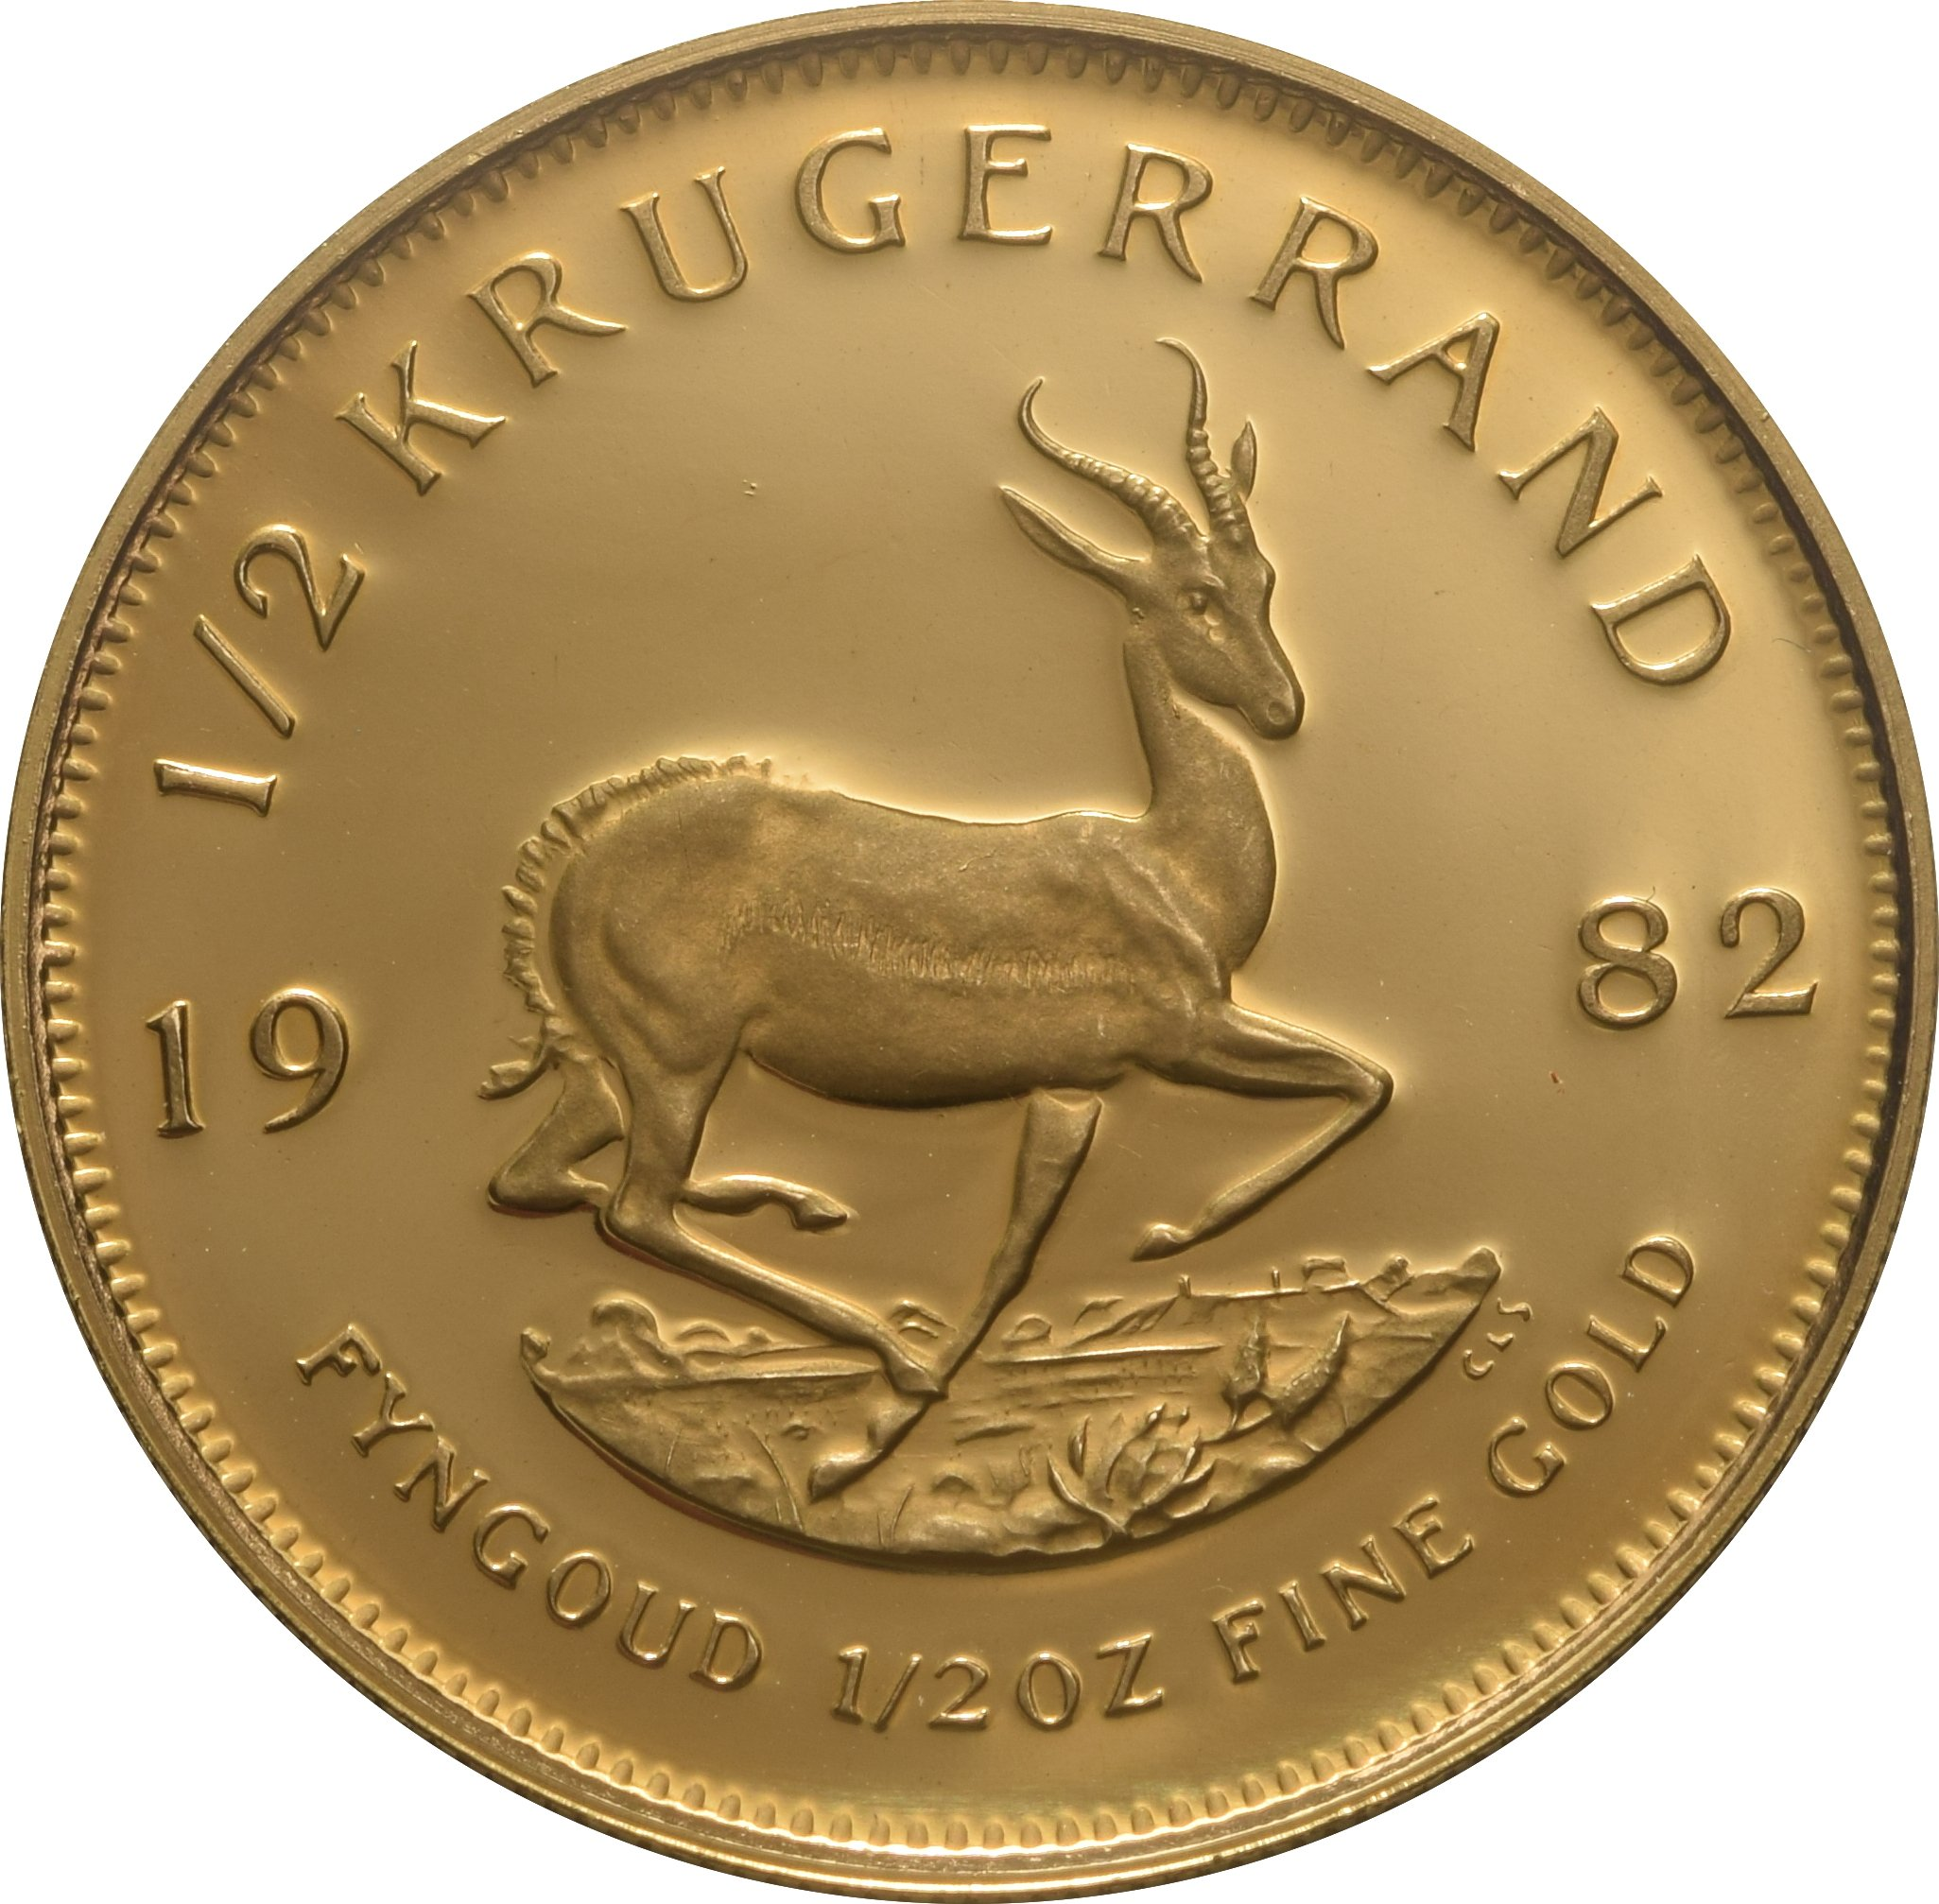 1982 Proof Half Ounce Krugerrand Gold Coin